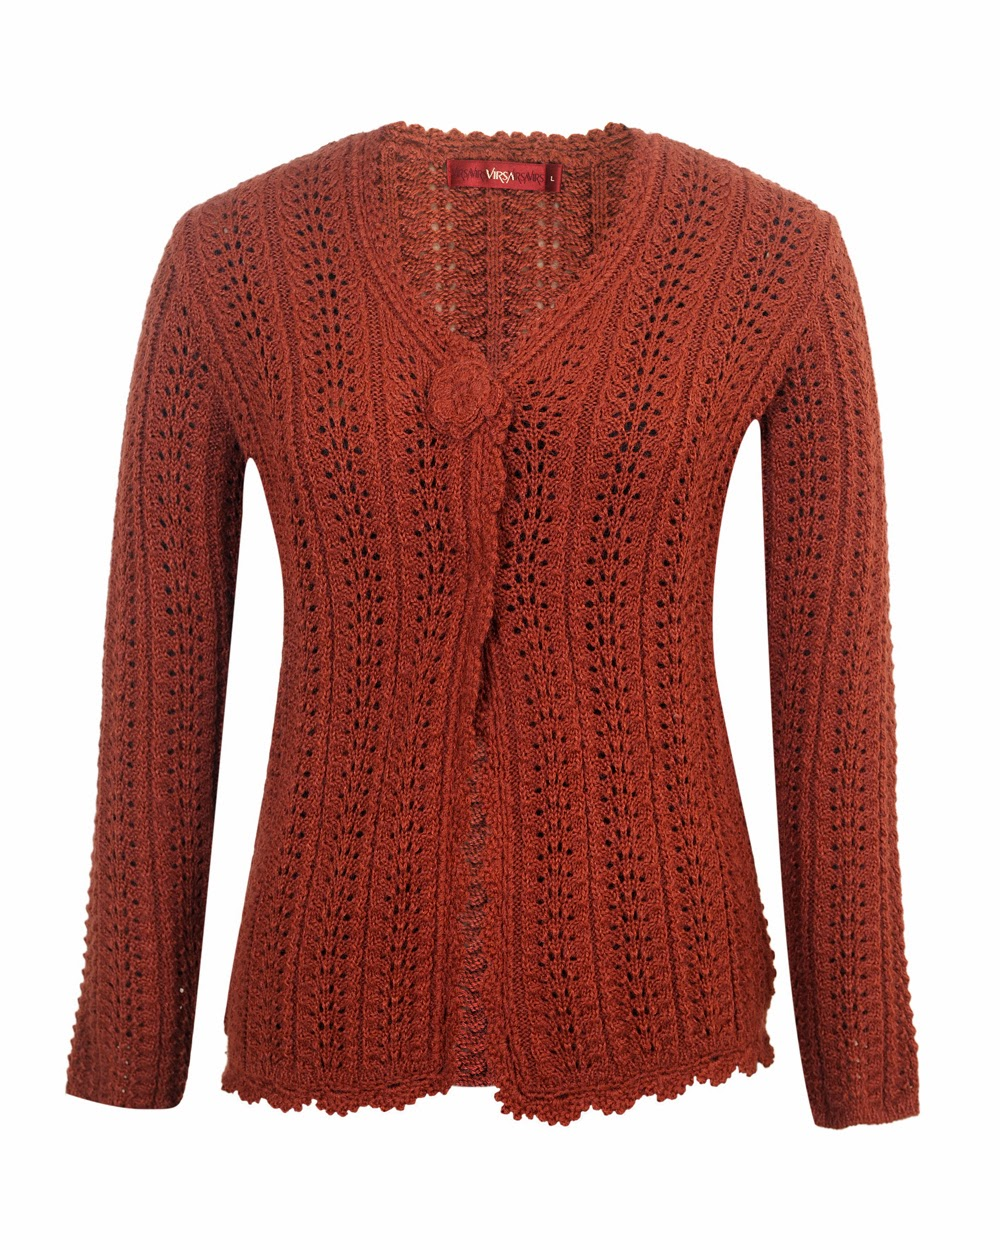 Selecting a style of women's cardigans. There's a lot of variation in women's cardigans. The style of your sweater is one of its most visible features, so it's important that you choose one individualized to you.